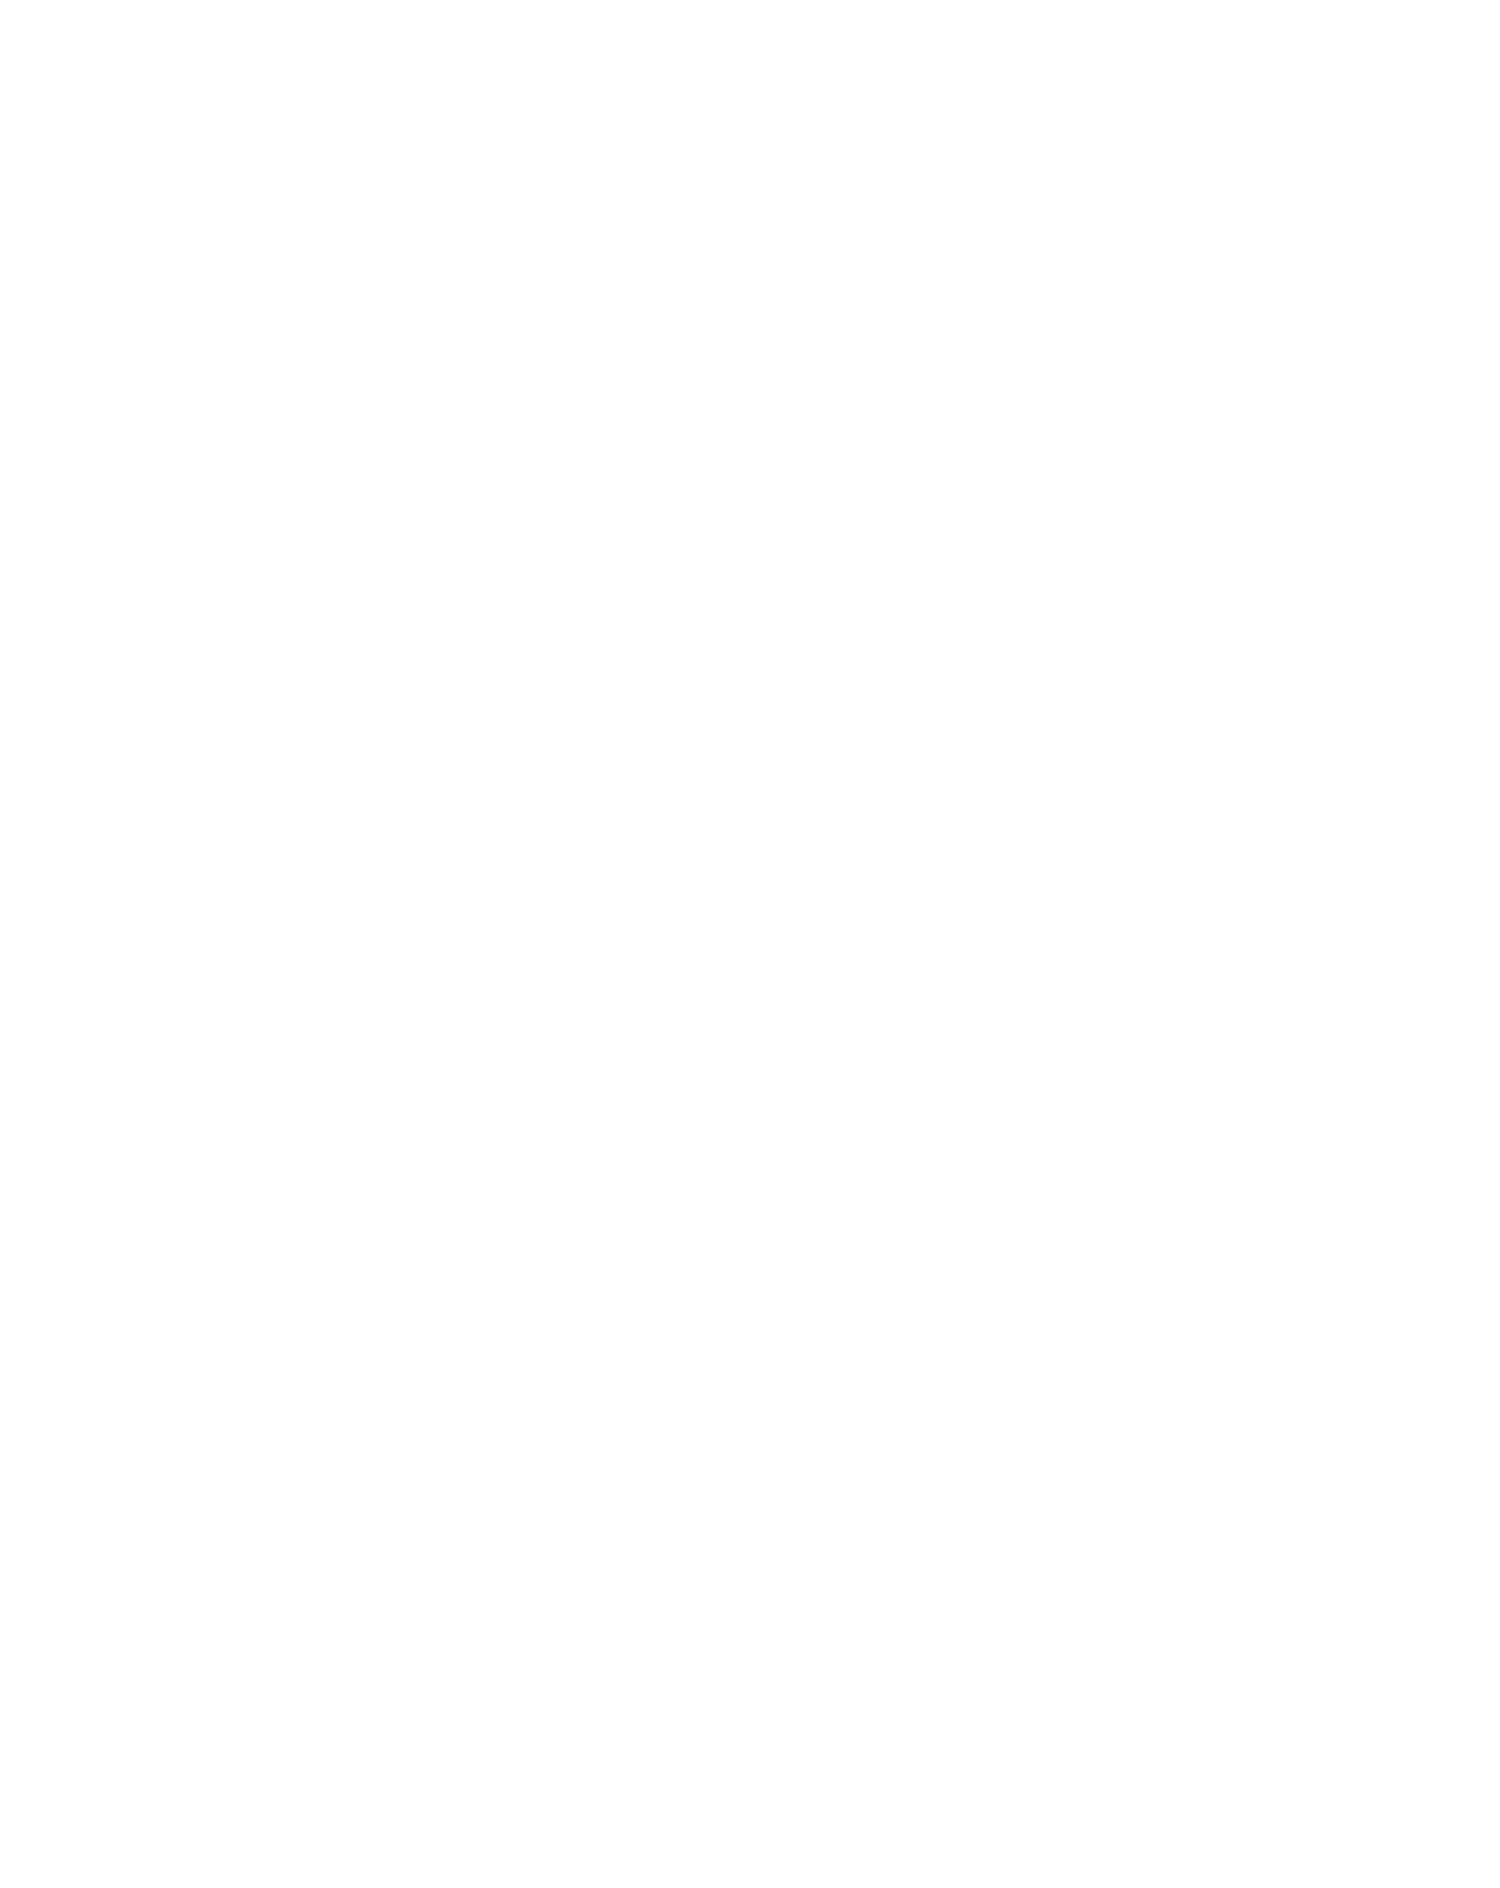 JUVITHA - Luxury Packaging & Stationery - Sydney Australia. Display & Gift boxes, Folders, Ring binders and Menu covers,